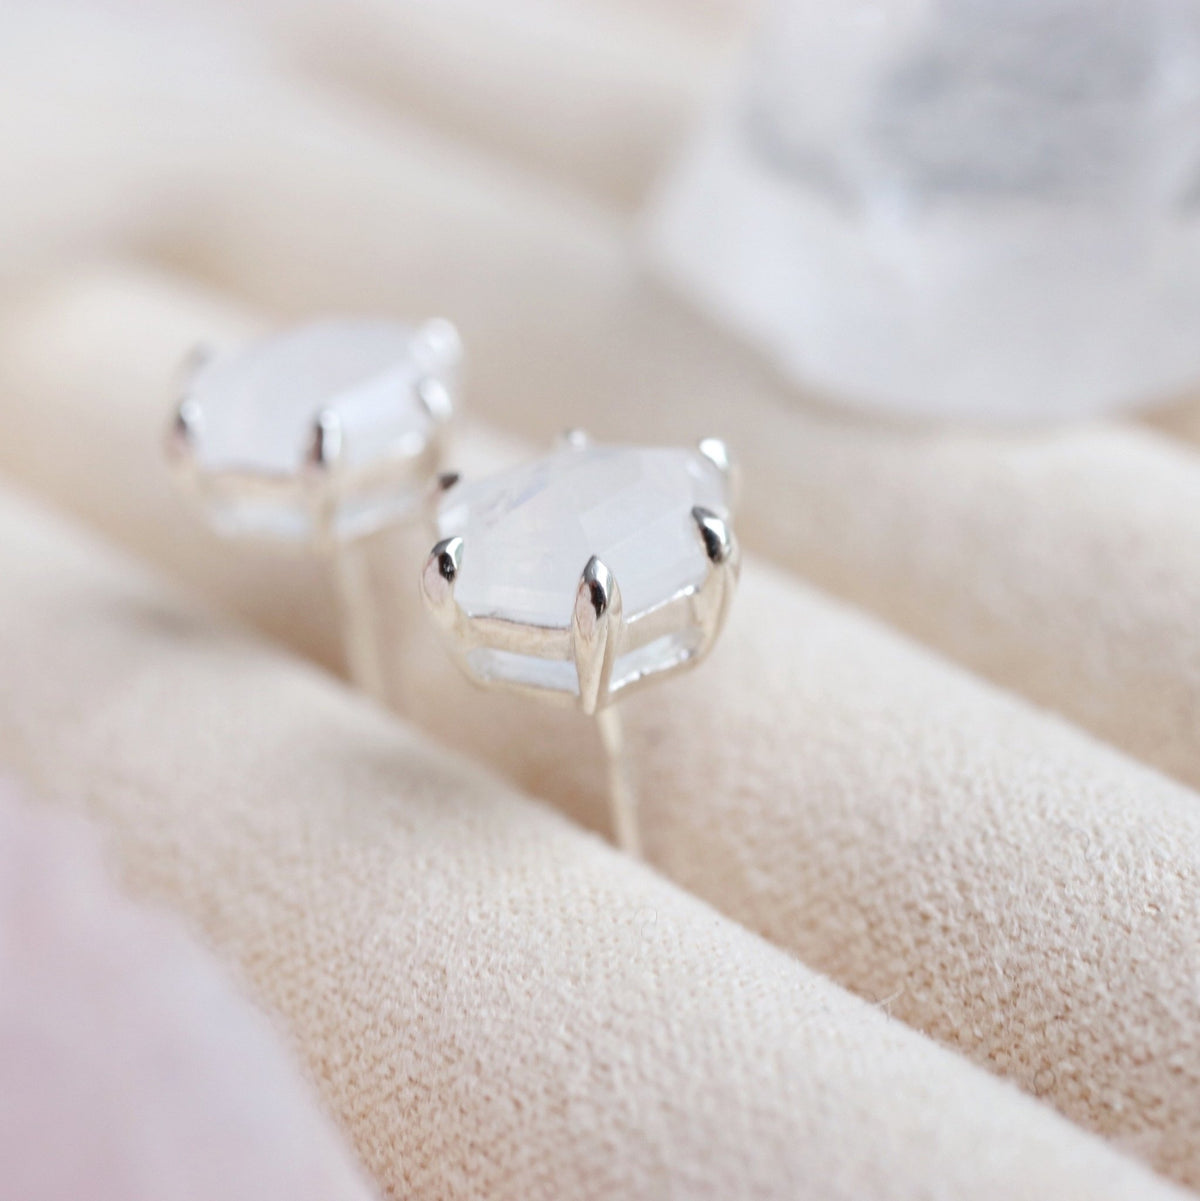 MINI HONOUR SHIELD STUD EARRINGS - RAINBOW MOONSTONE & SILVER - SO PRETTY CARA COTTER